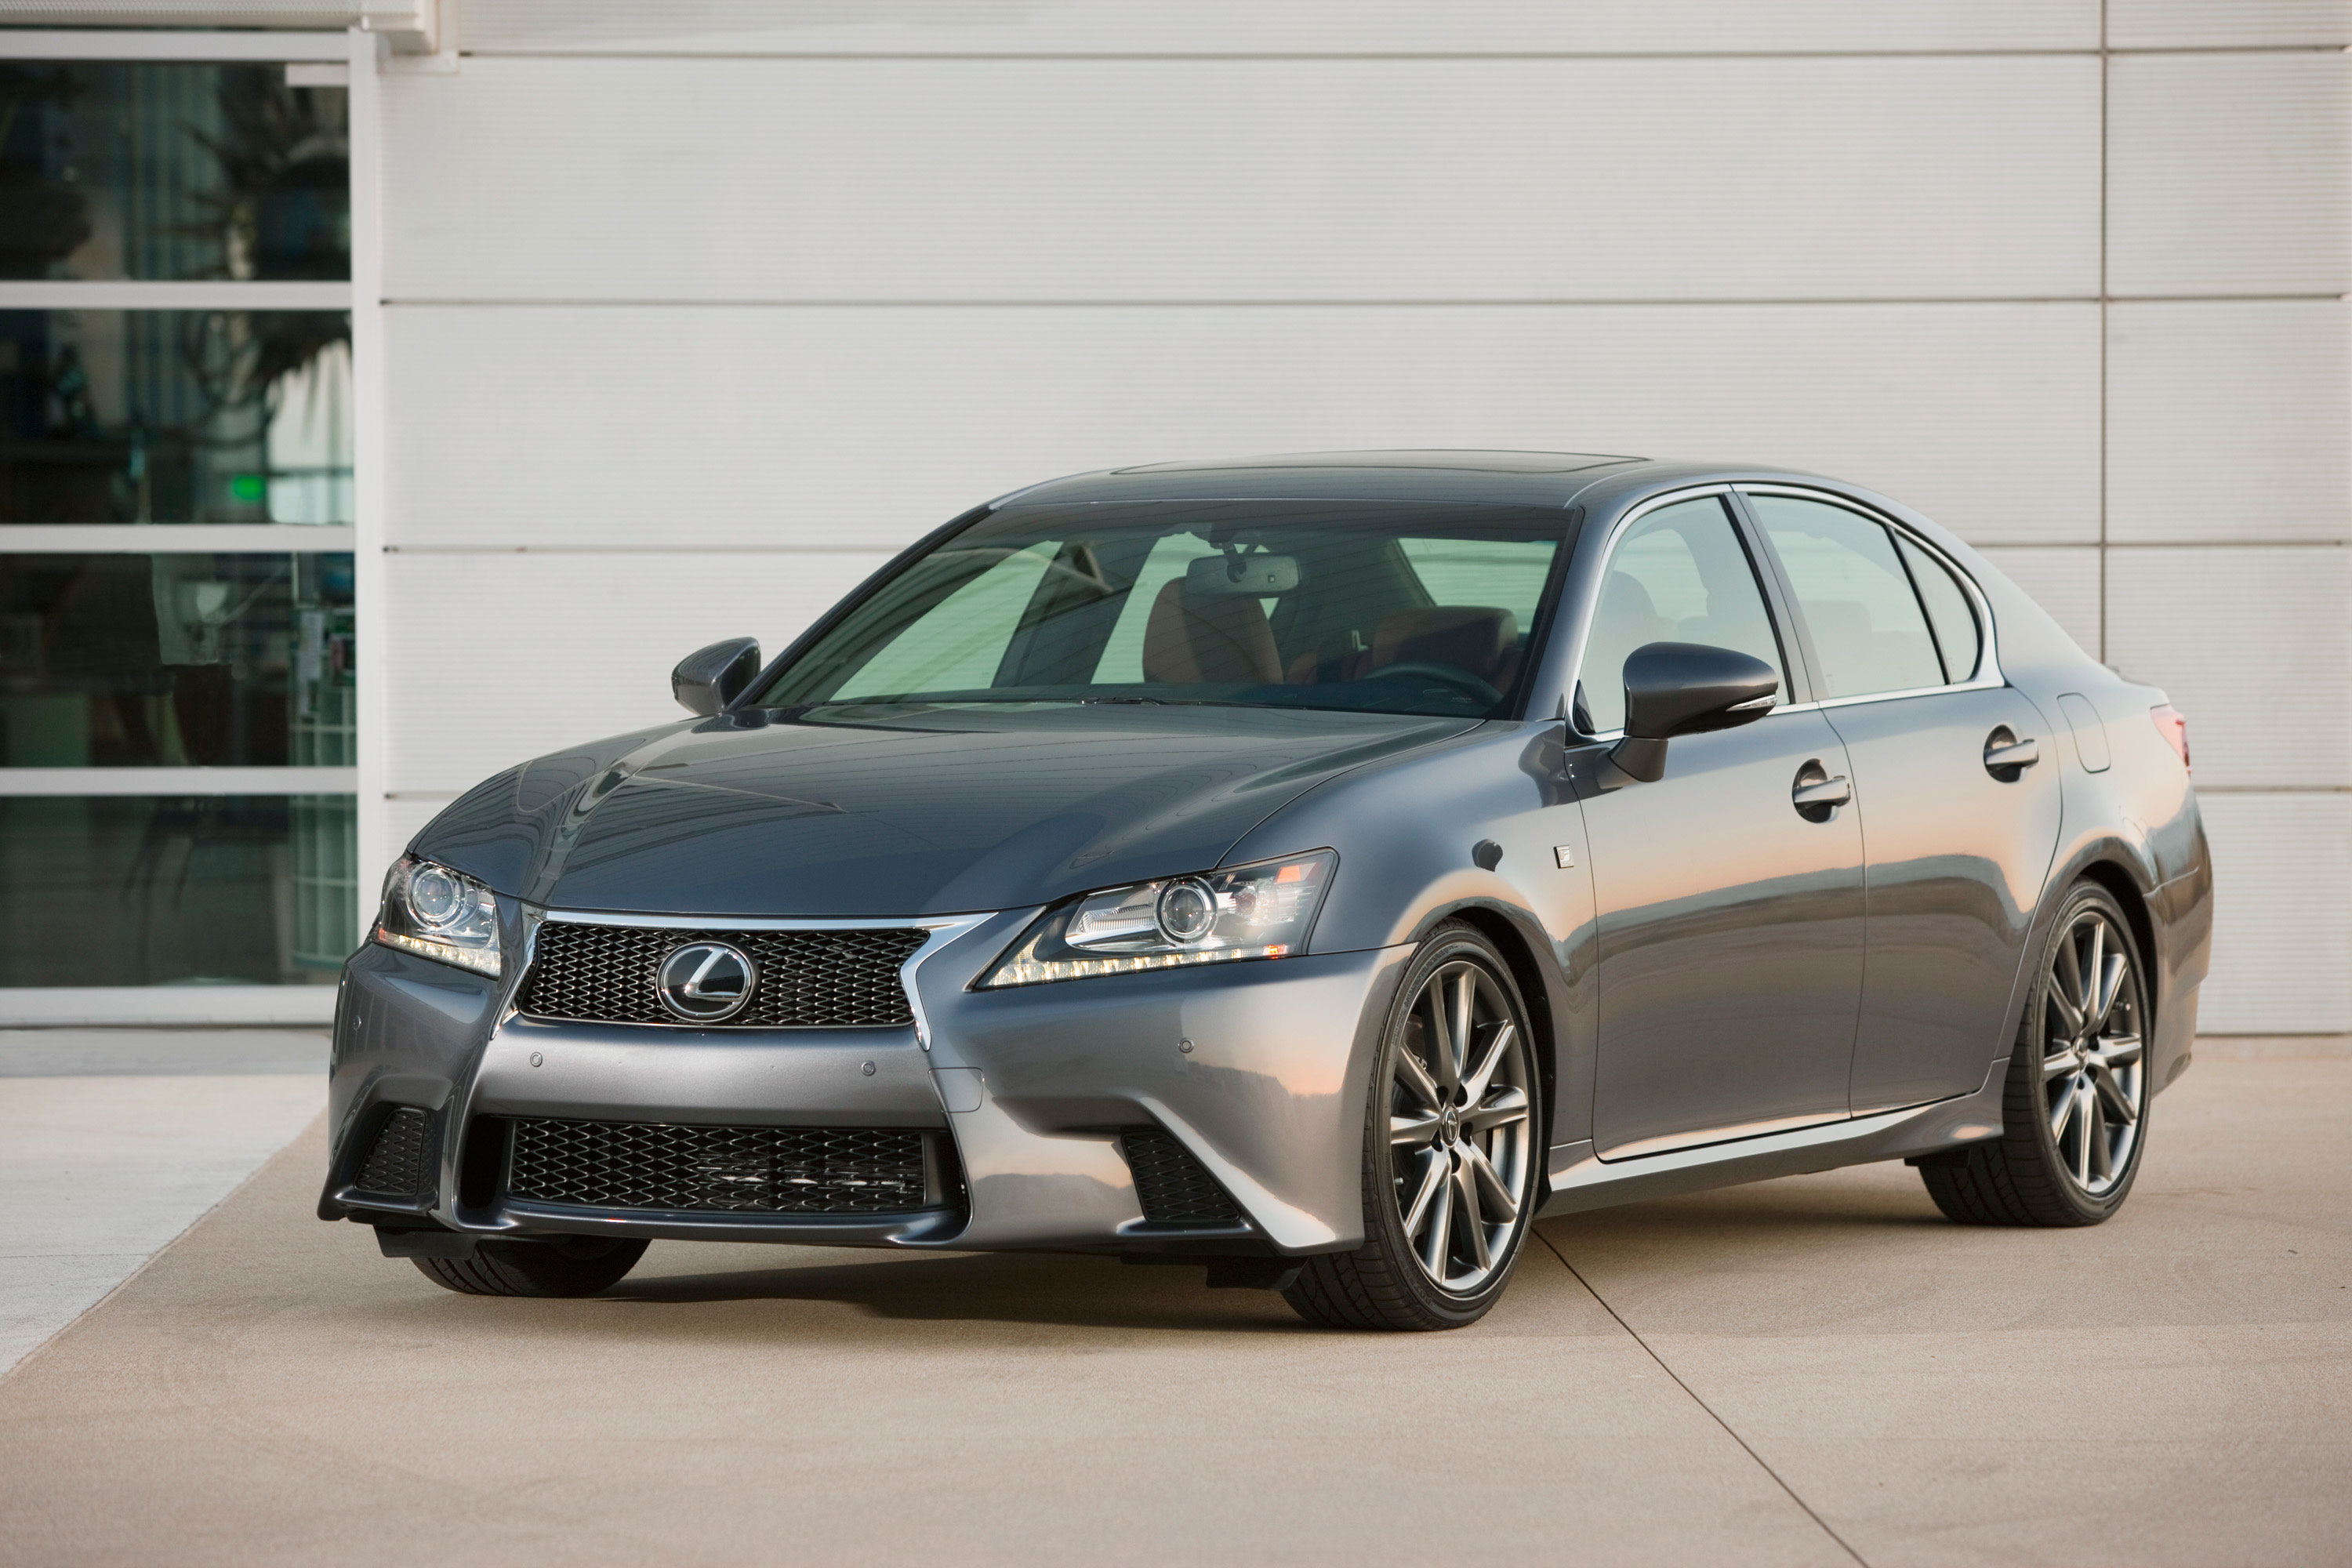 lexus gs 350 f sport photo gallery lexus enthusiast. Black Bedroom Furniture Sets. Home Design Ideas